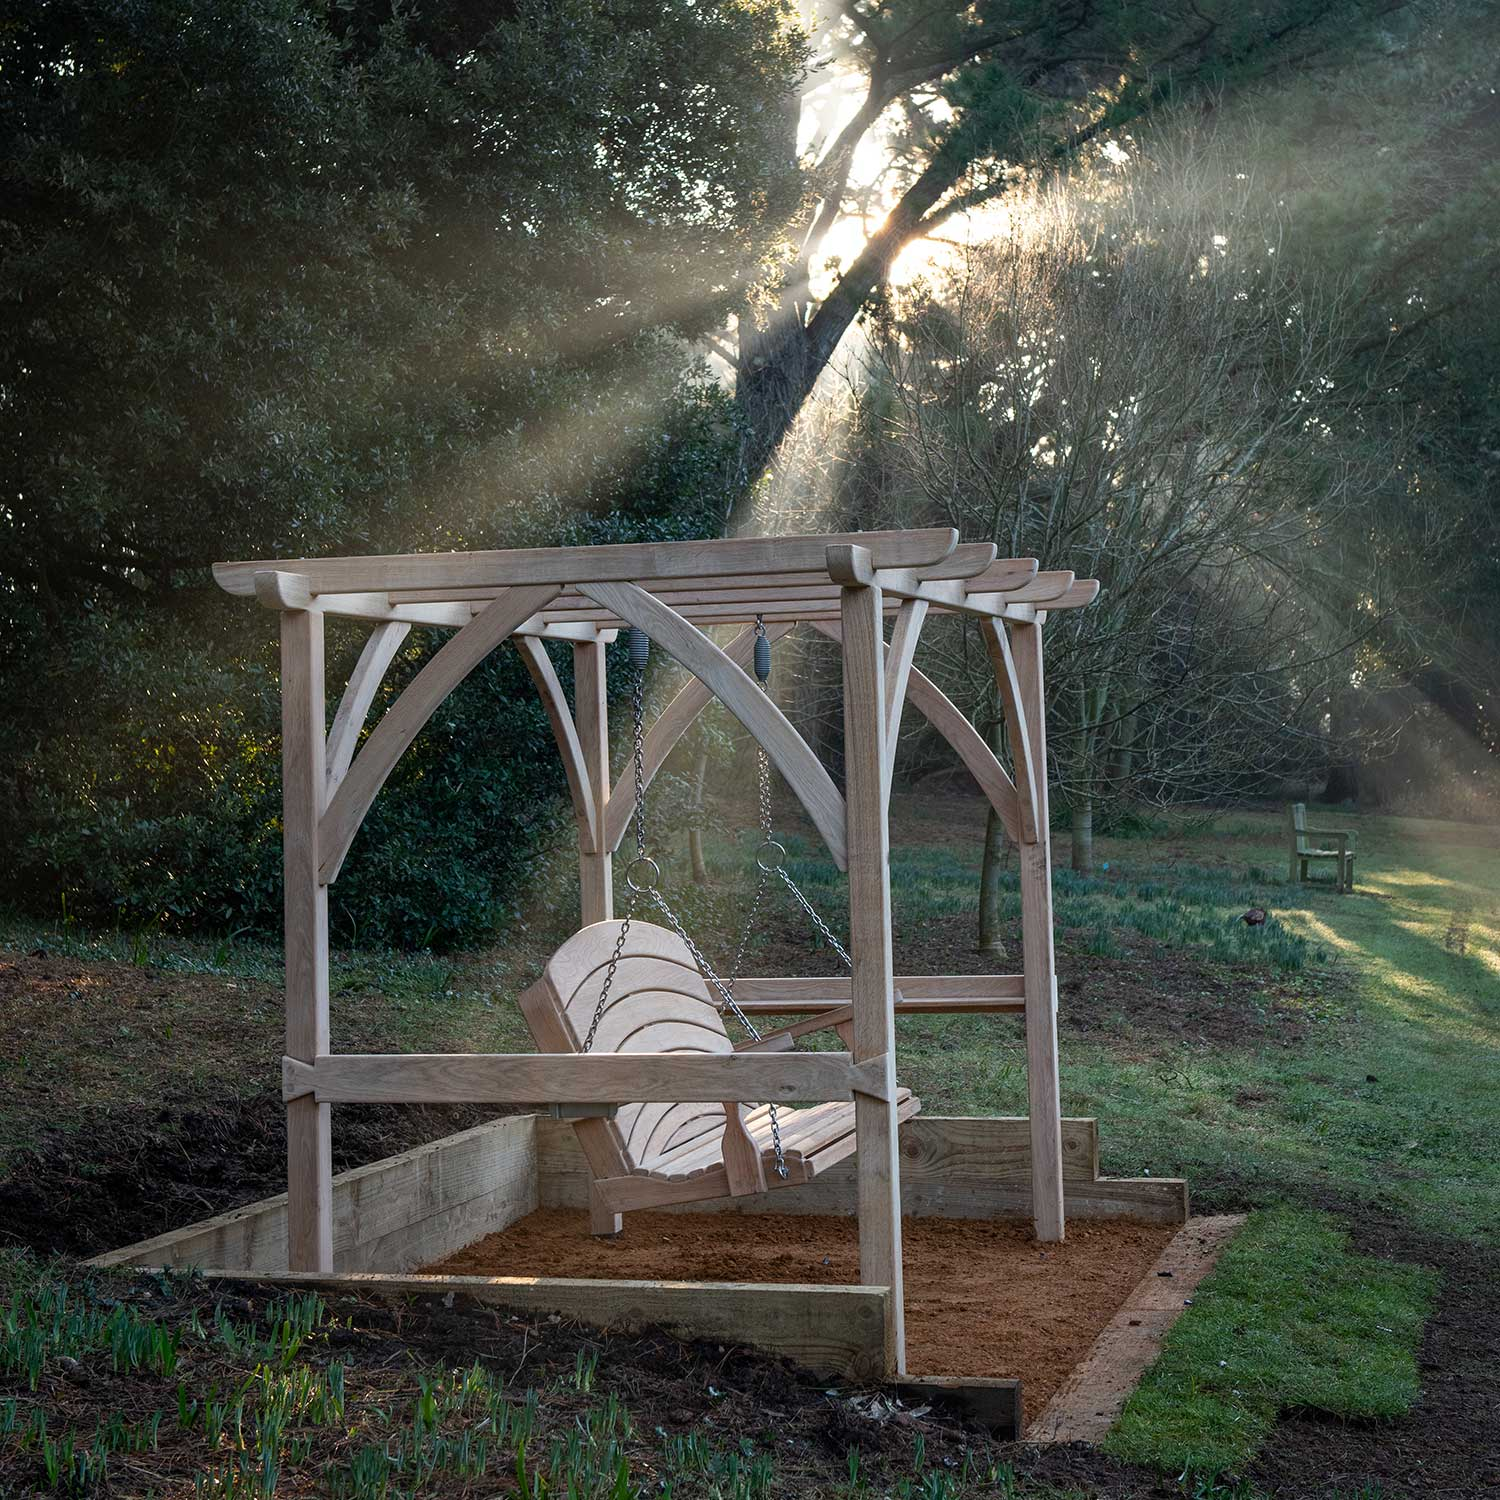 Sitting Spiritually Swing Seat in the arboretum at Abbotsbury Subtropical Gardens